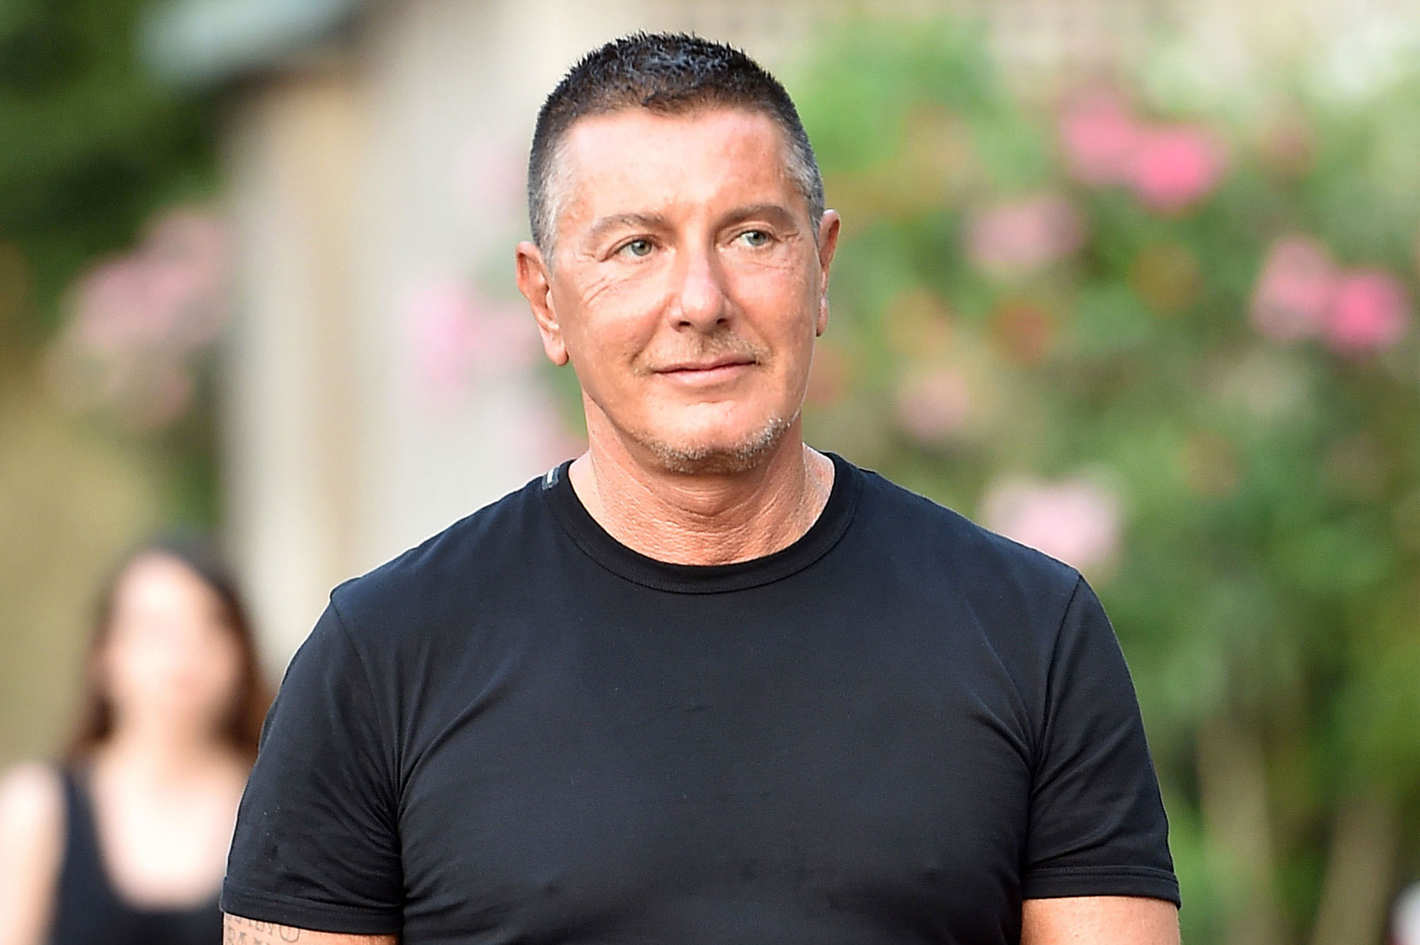 Famed Designer Stefano Gabbana Is Under Fire For His Rude